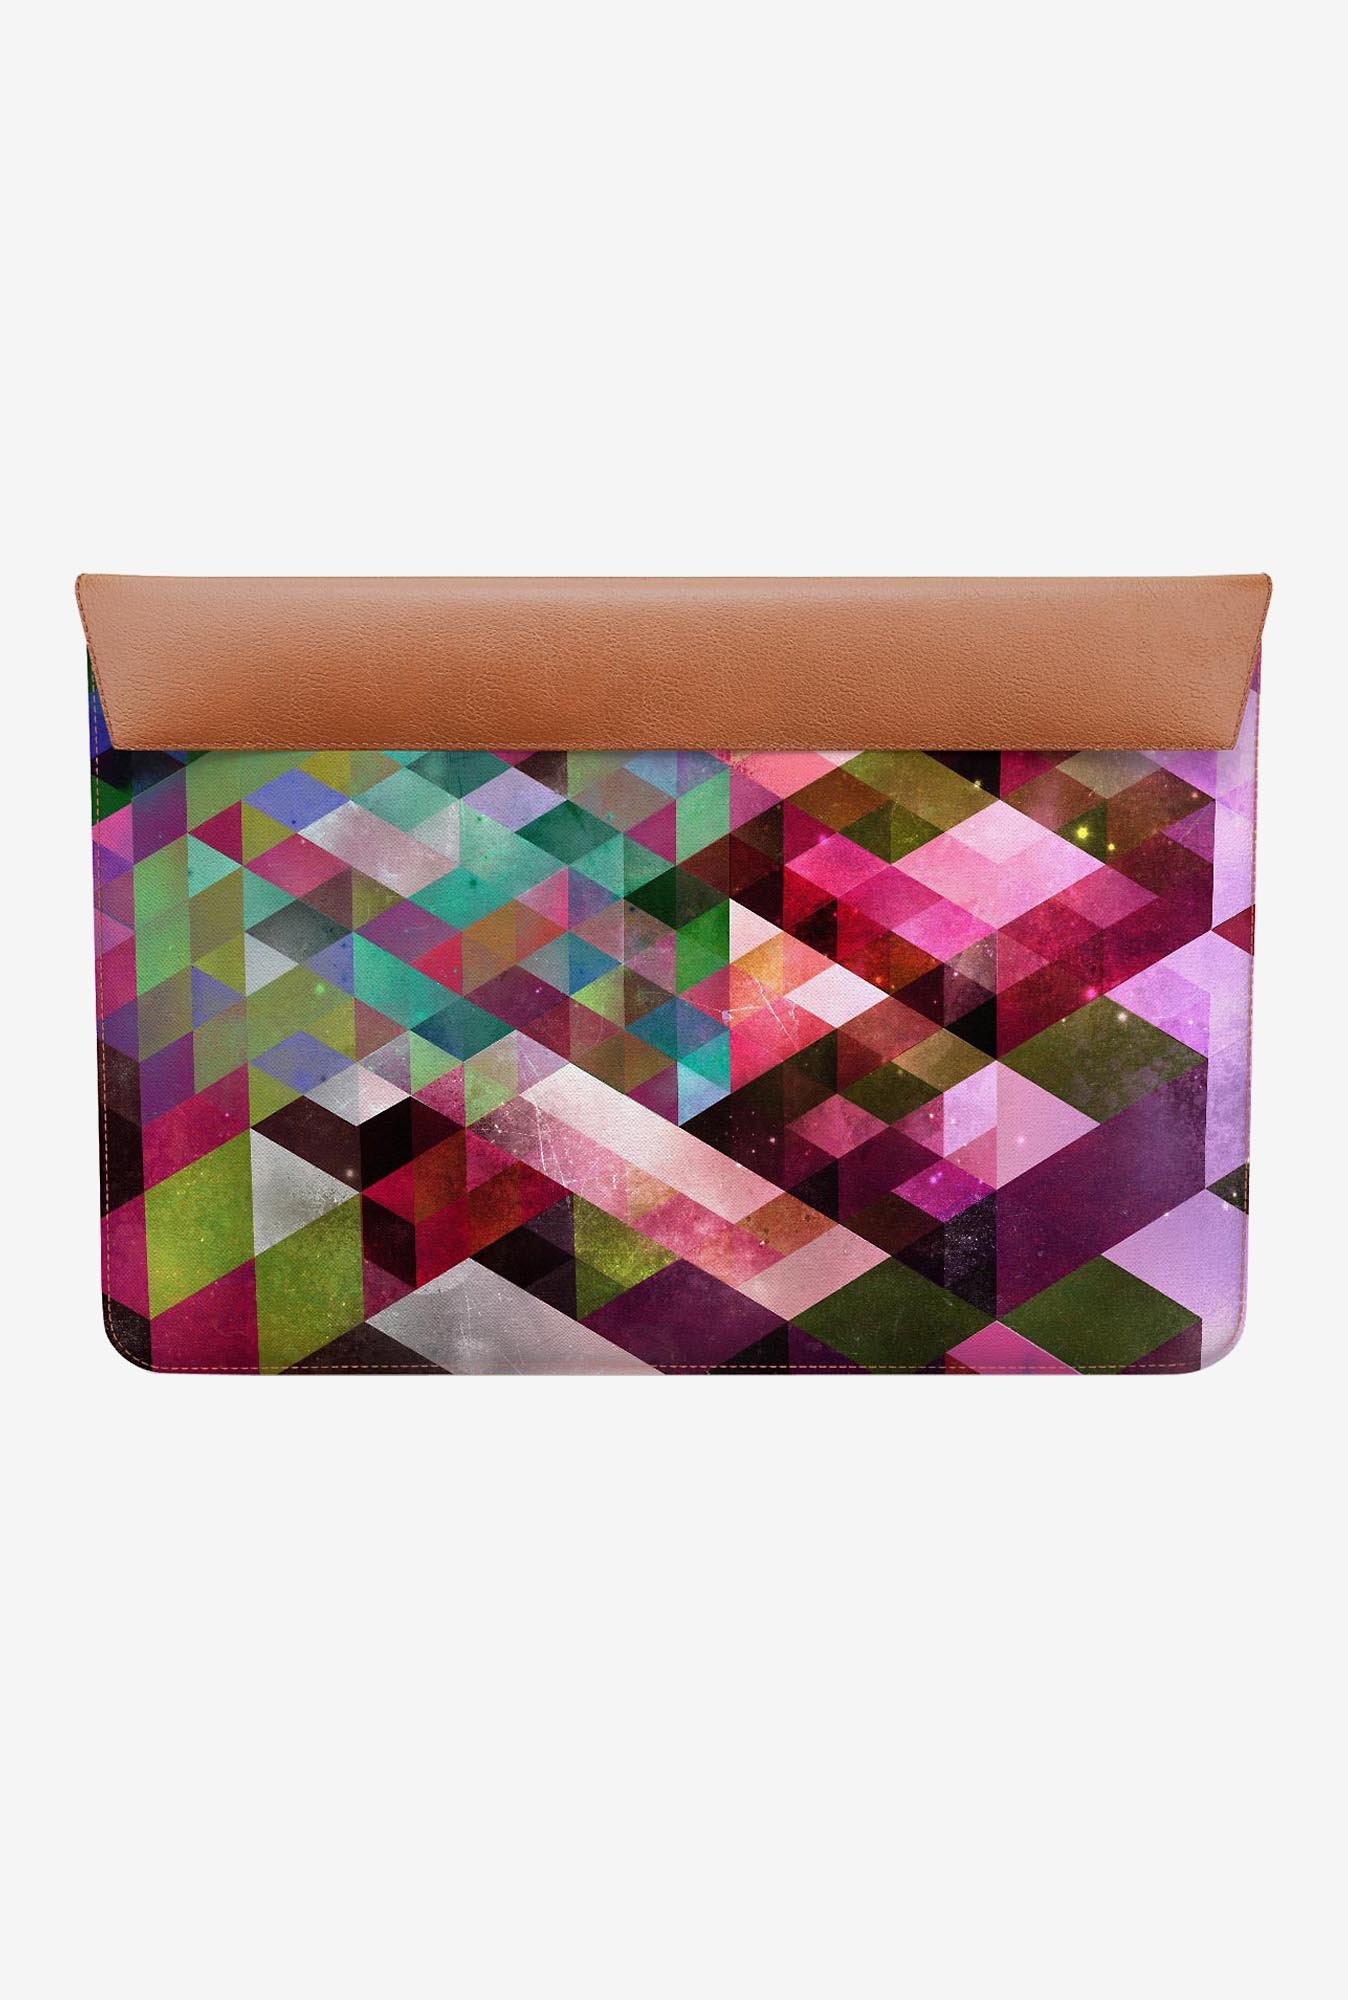 "DailyObjects Myshmysh Hrxtl Macbook Air 11"" Envelope Sleeve"